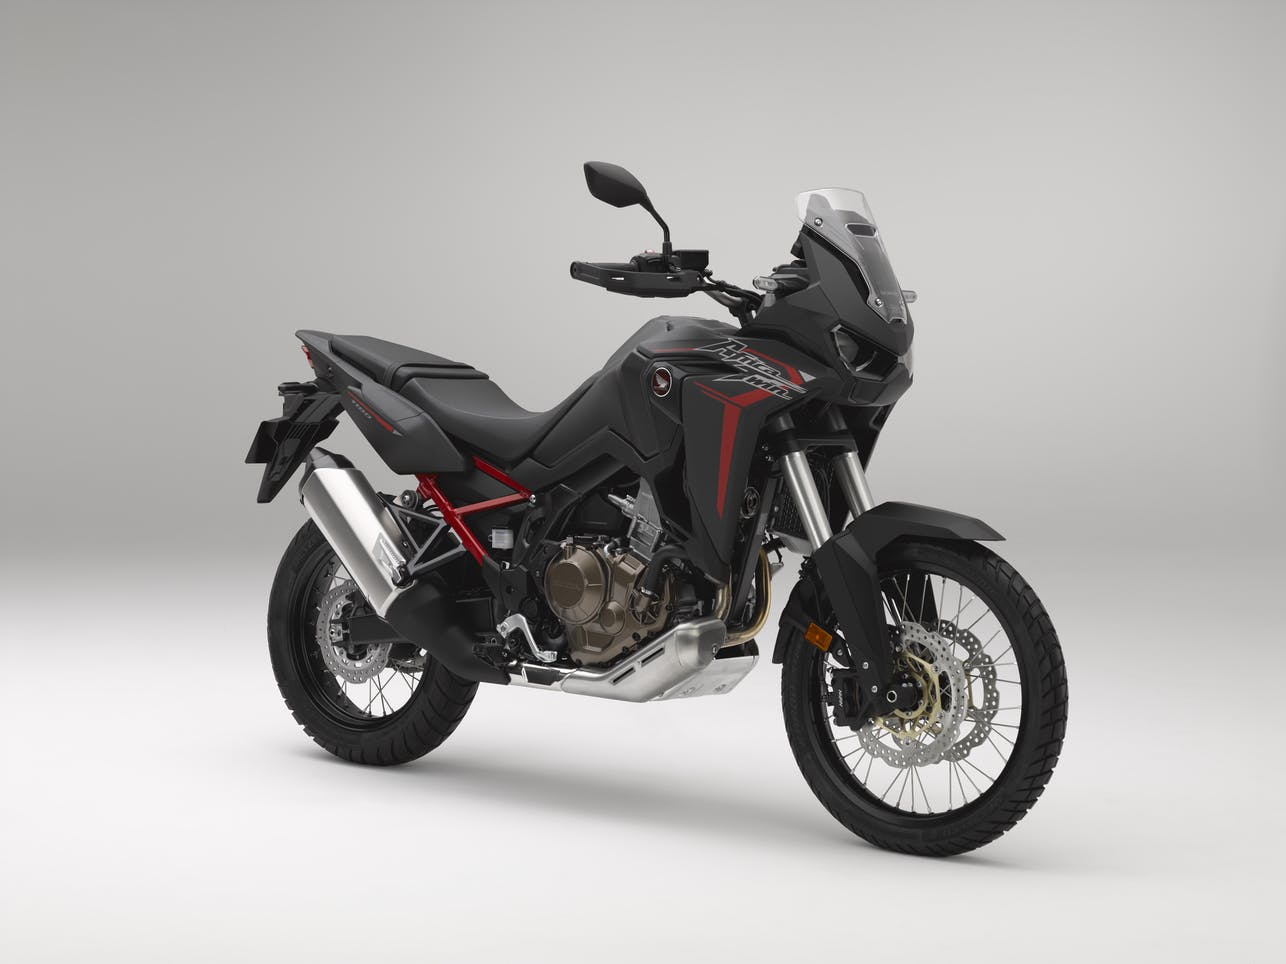 The awesome-looking CRF1100 africa twin in matt black